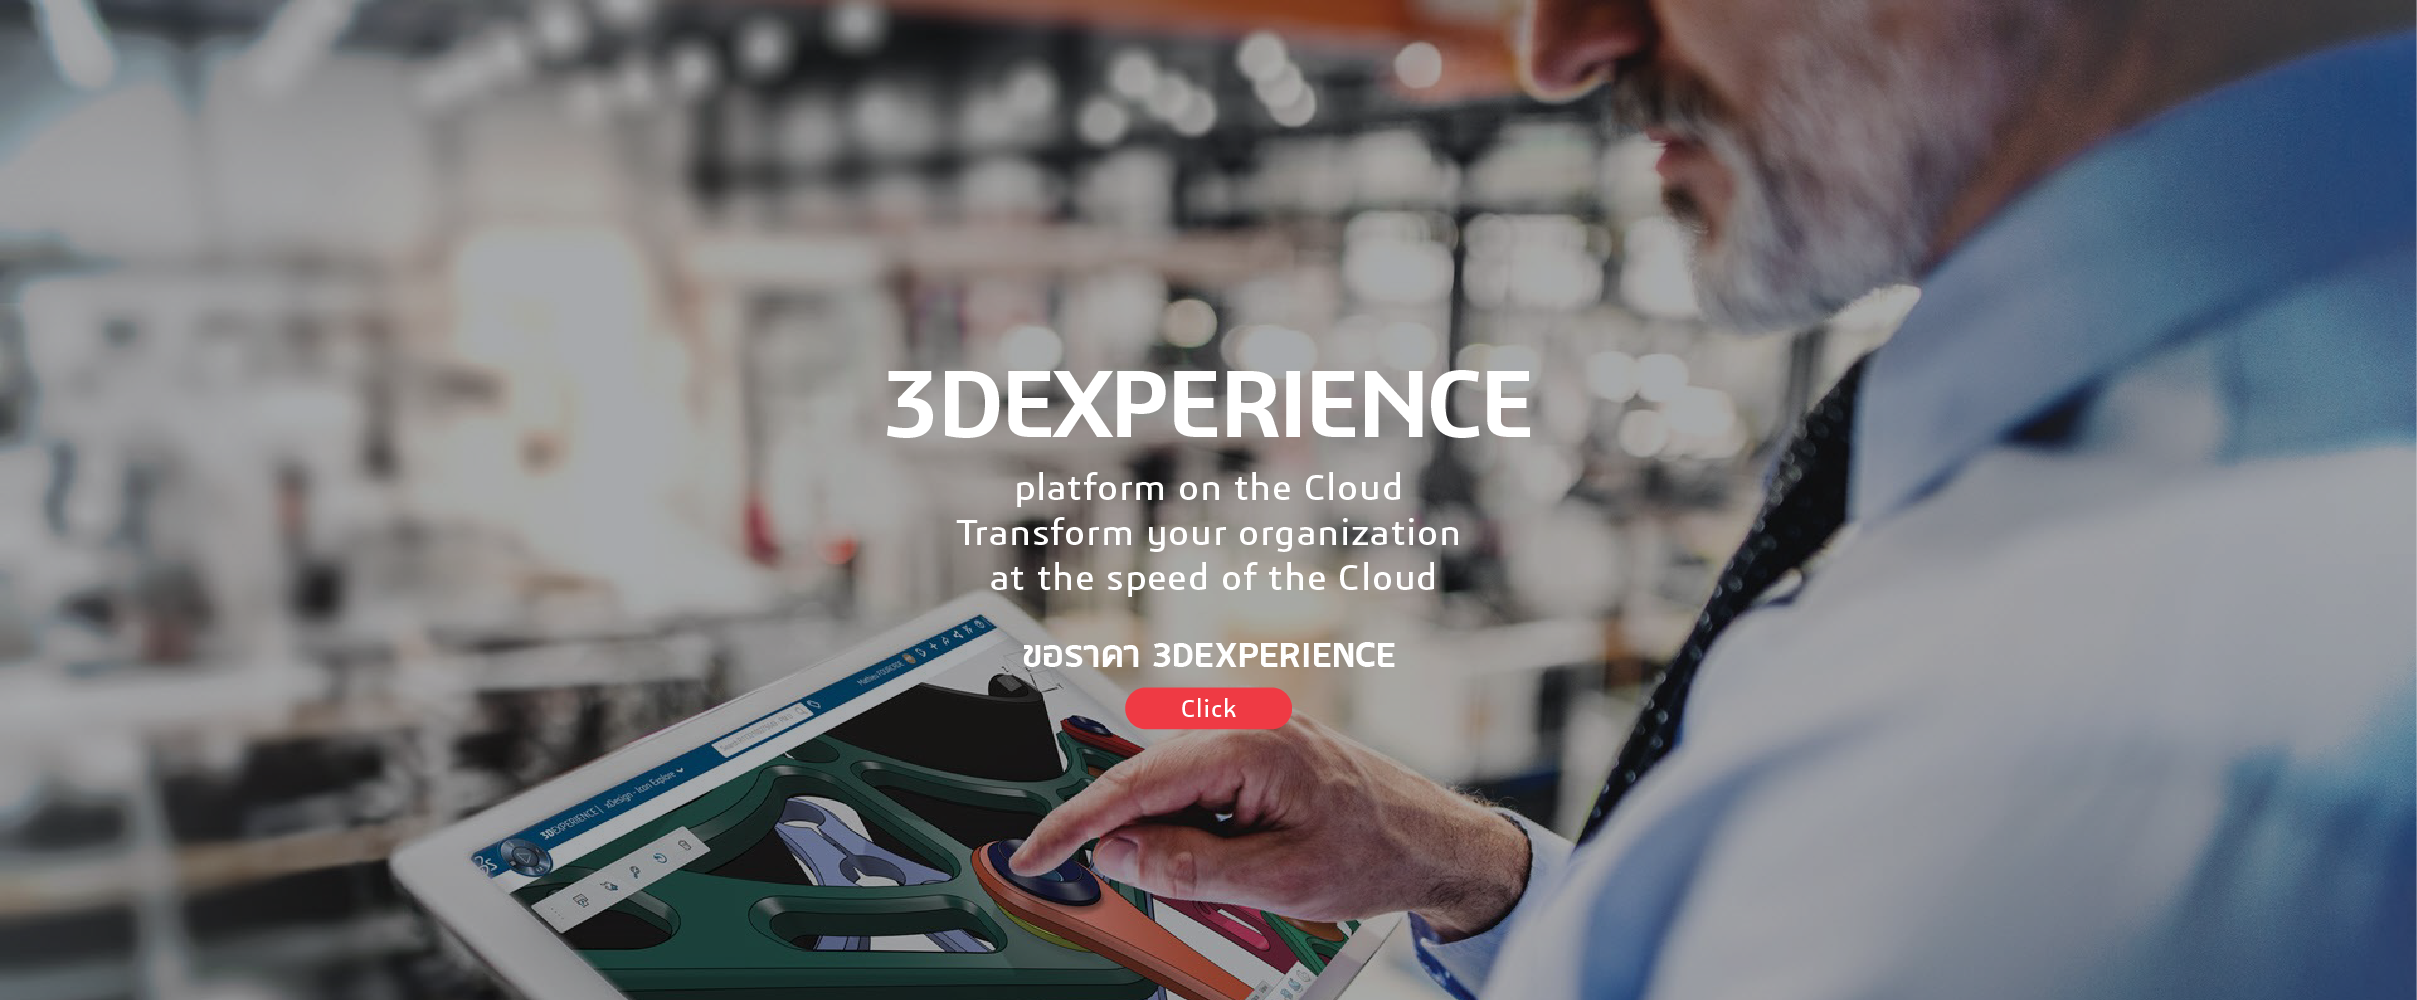 3DEXPERIENCE platform on the Cloud Transform your organization at the speed of the Cloud